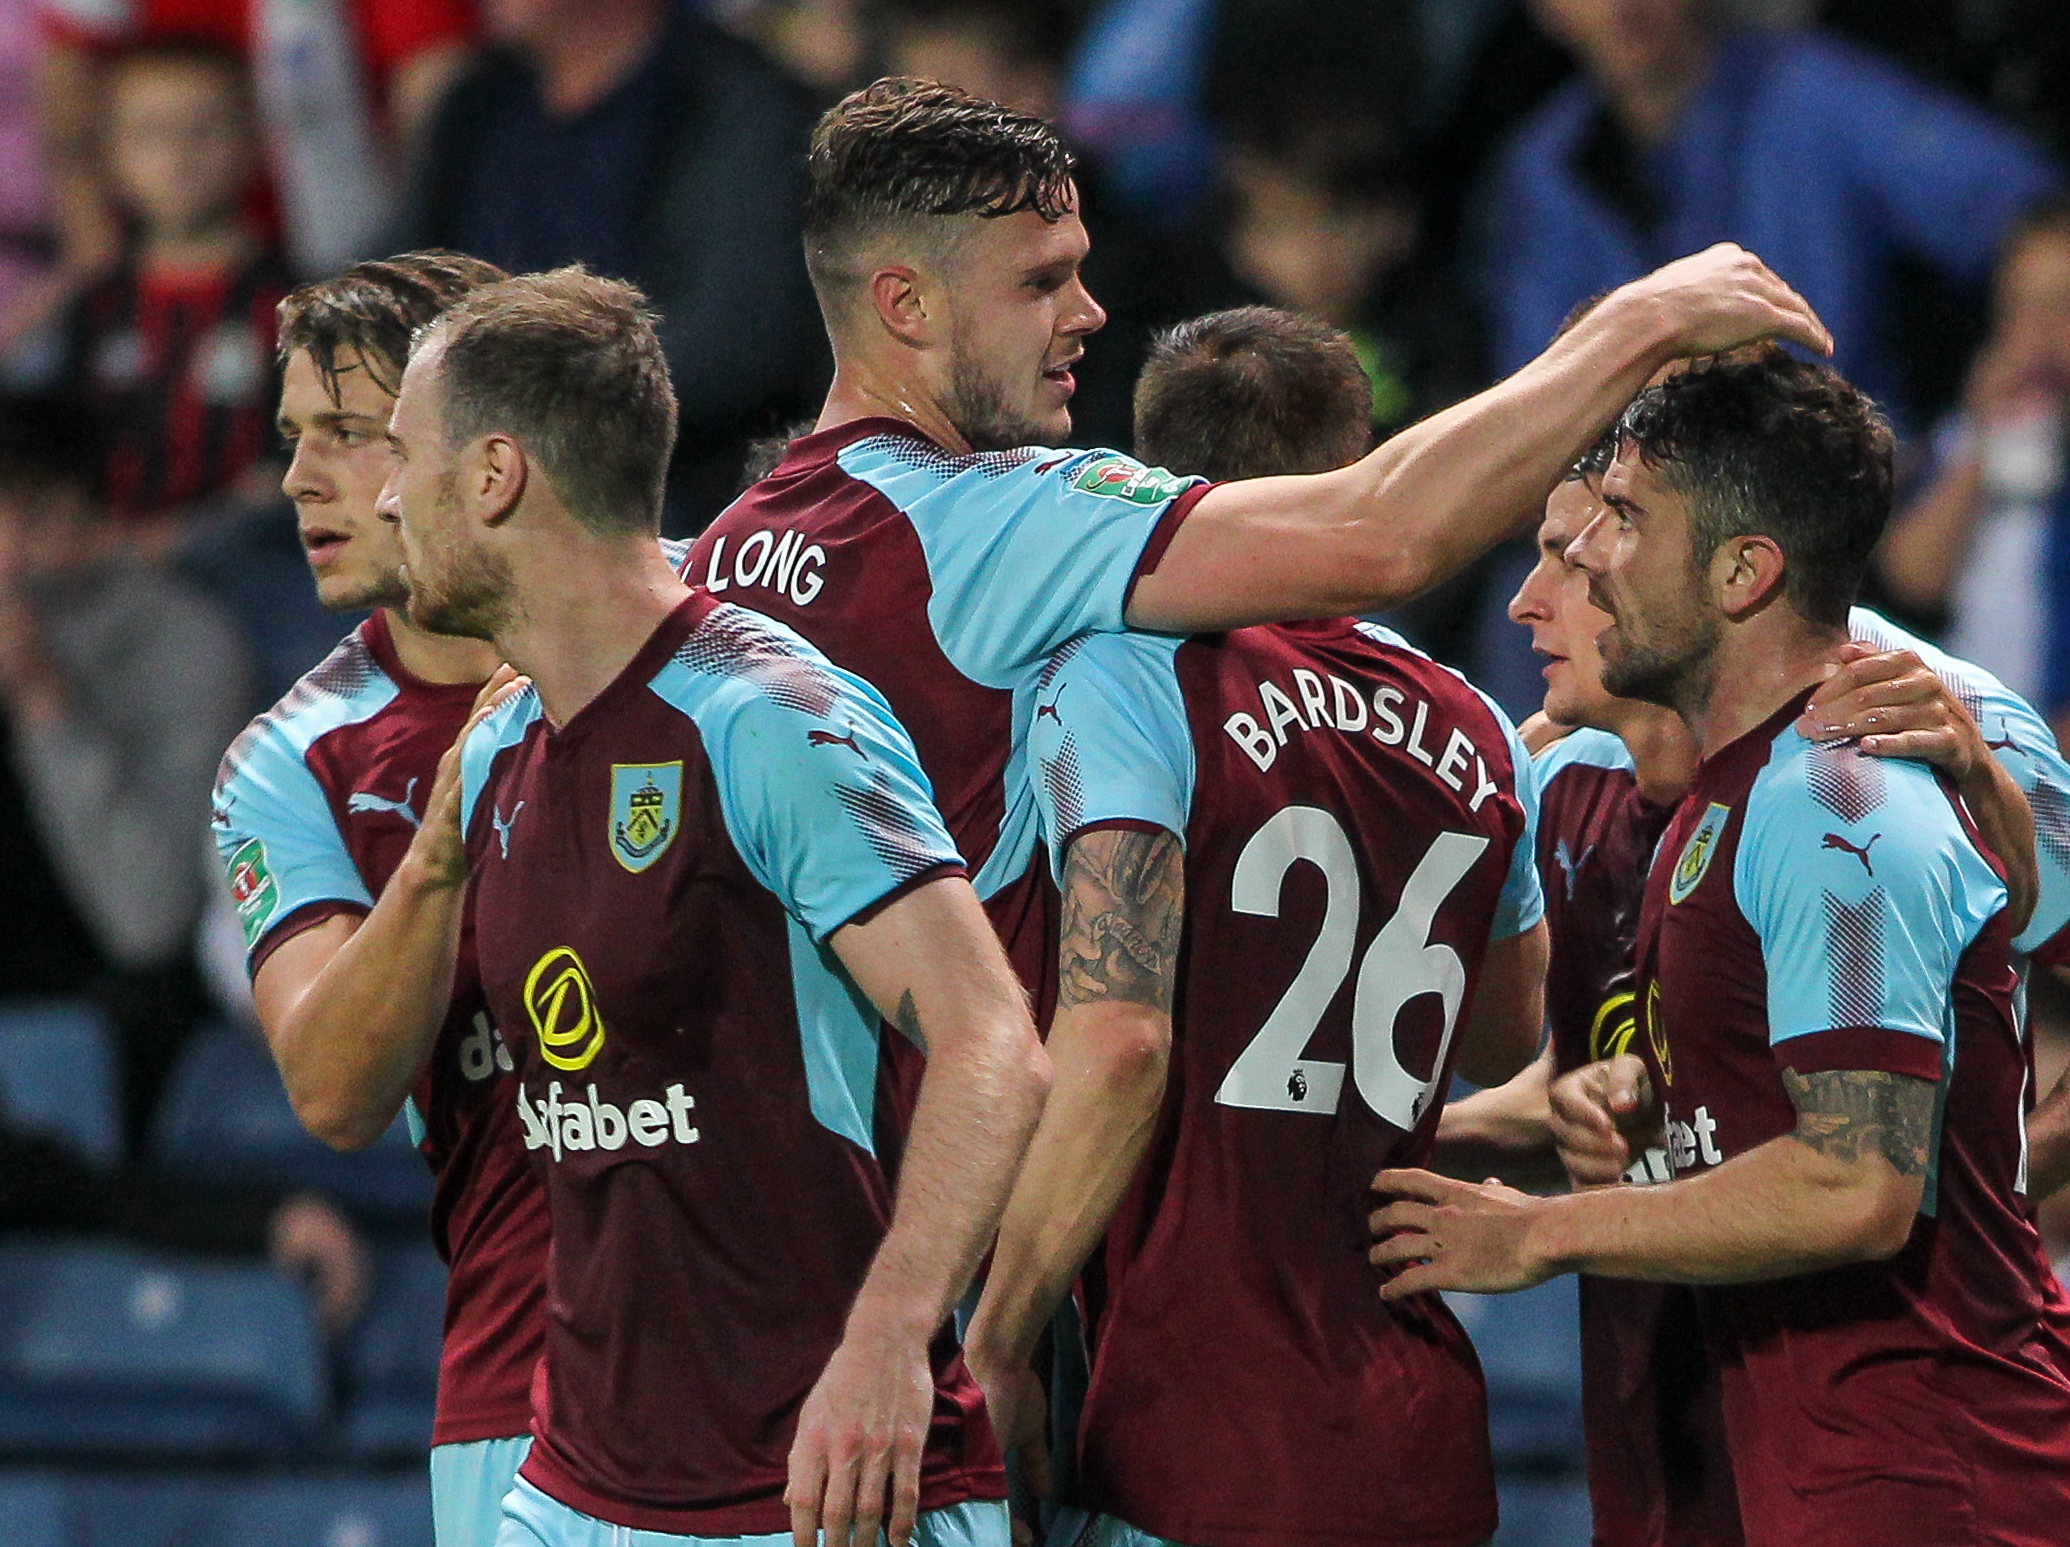 Sean Dyche expects to field another 'really strong' team similar to the one that beat Blackburn